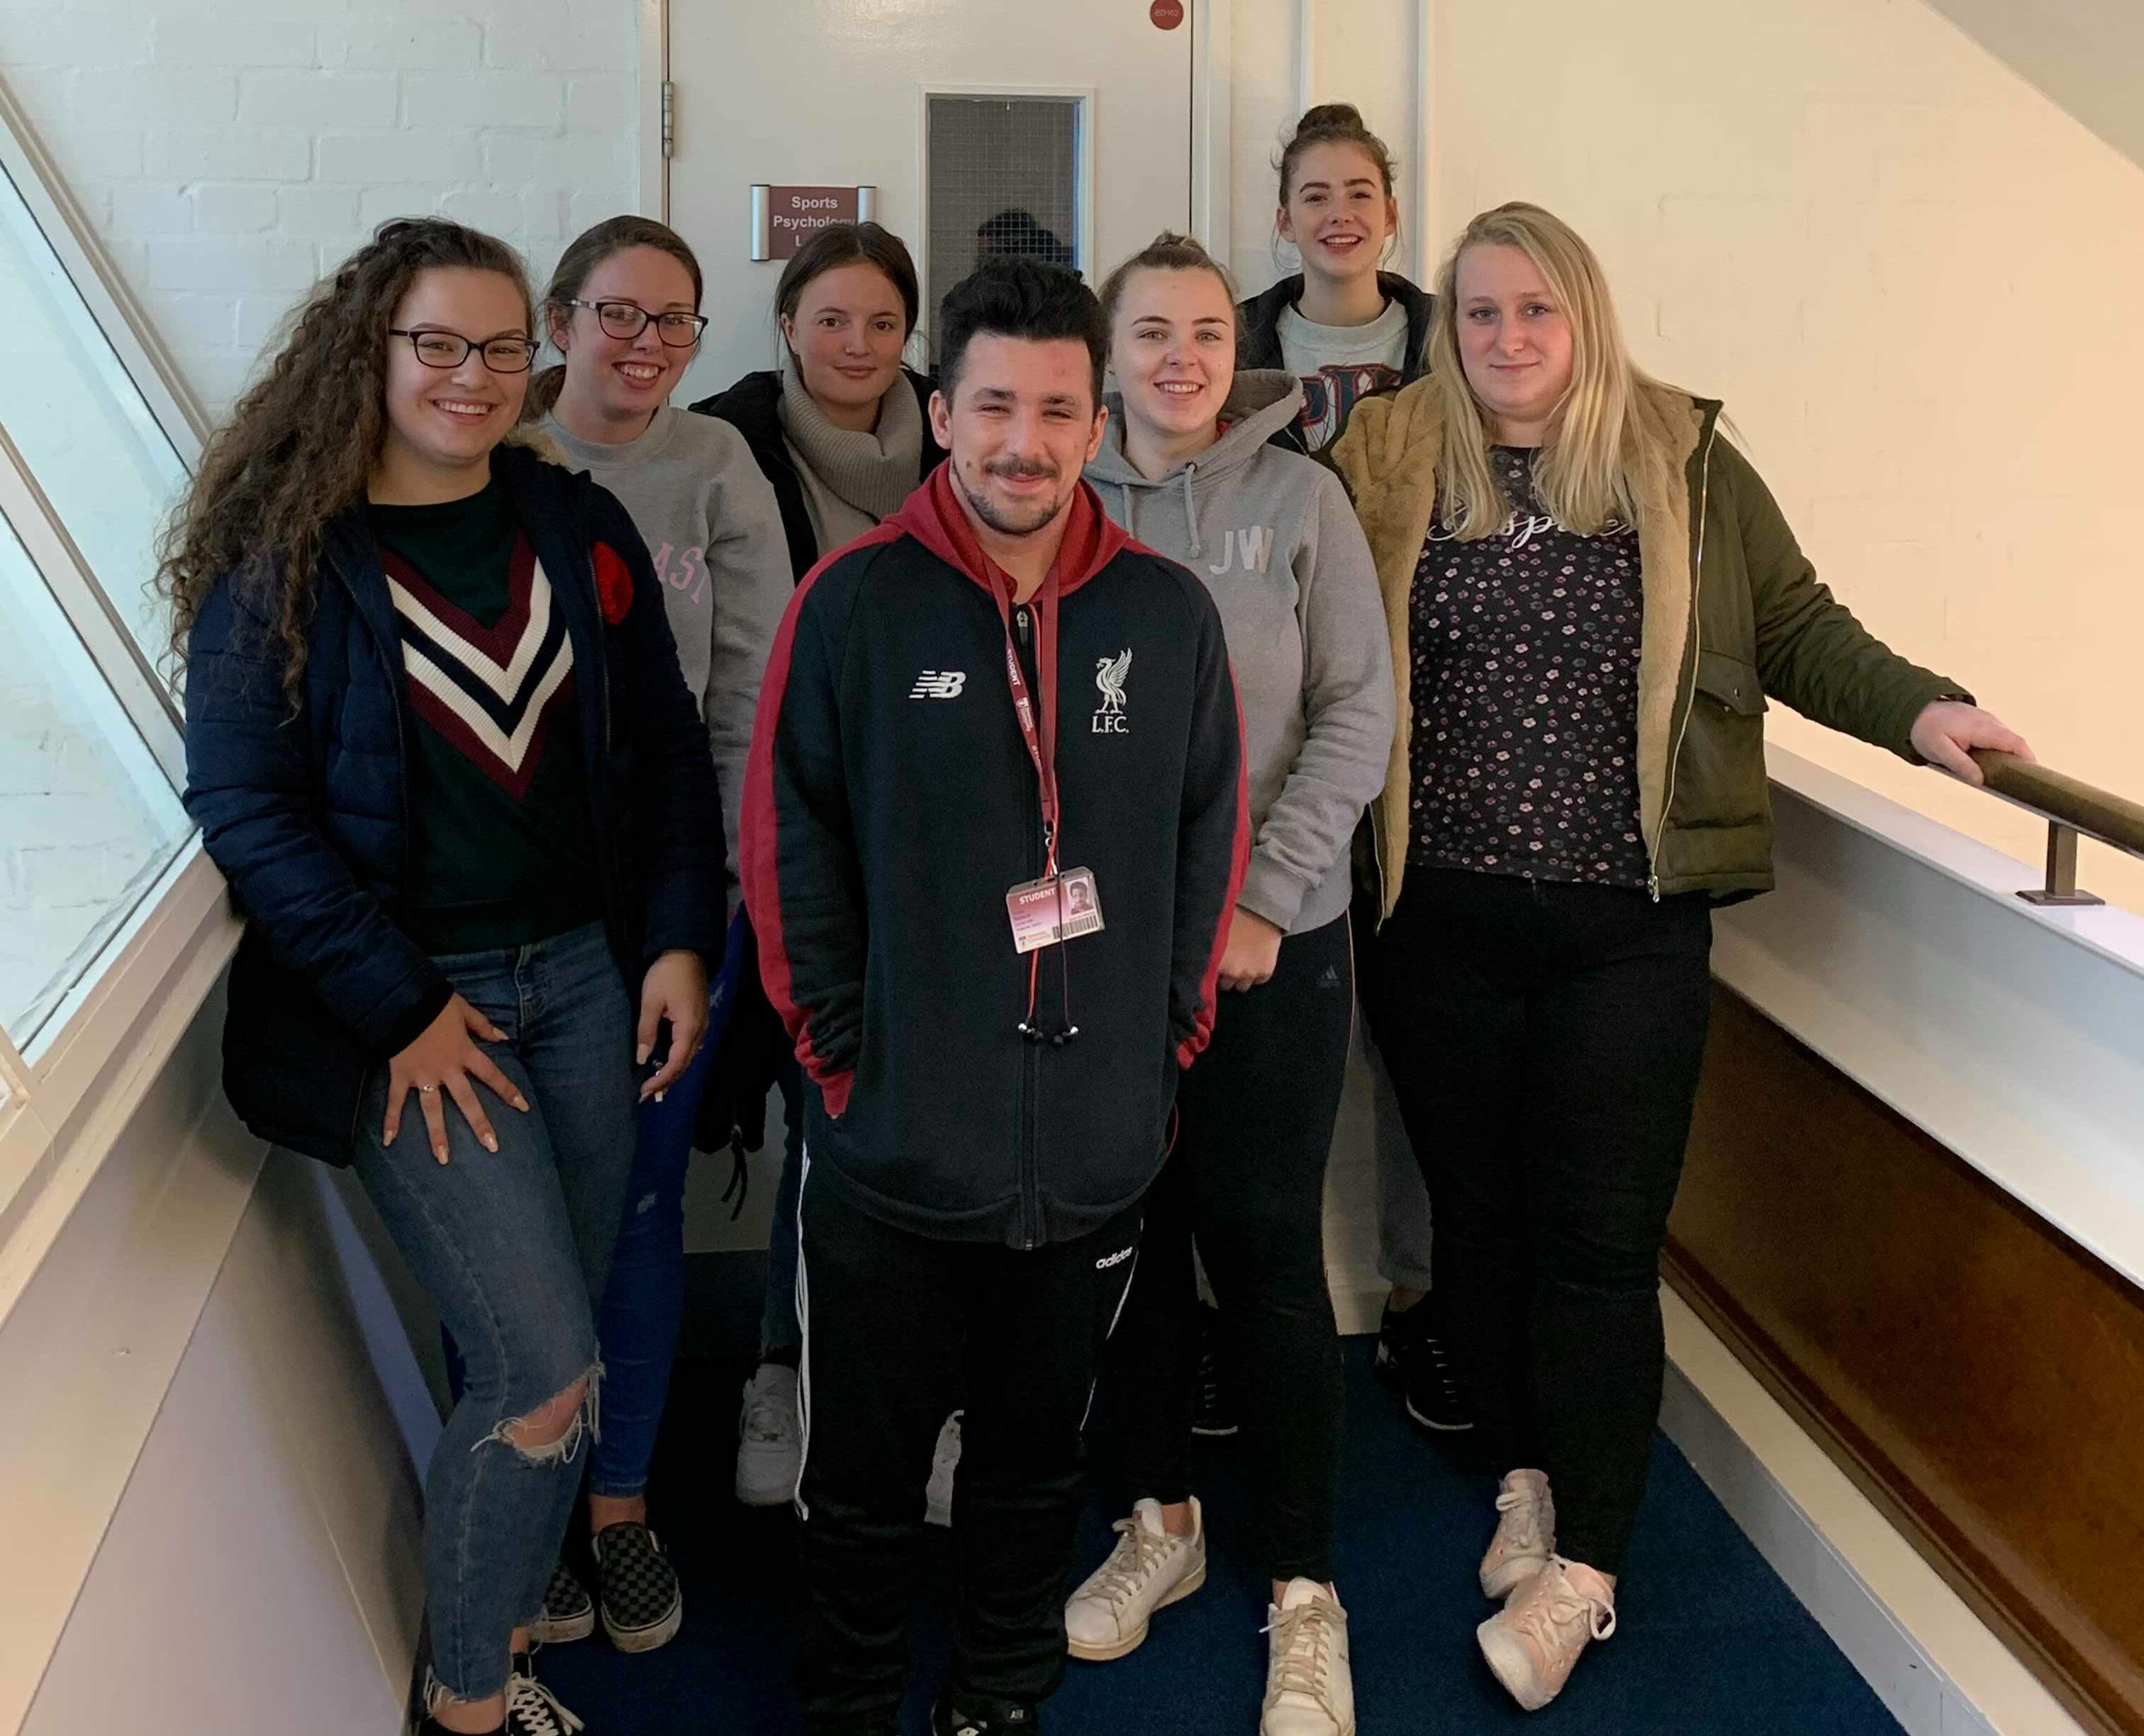 Sports students organise charity event